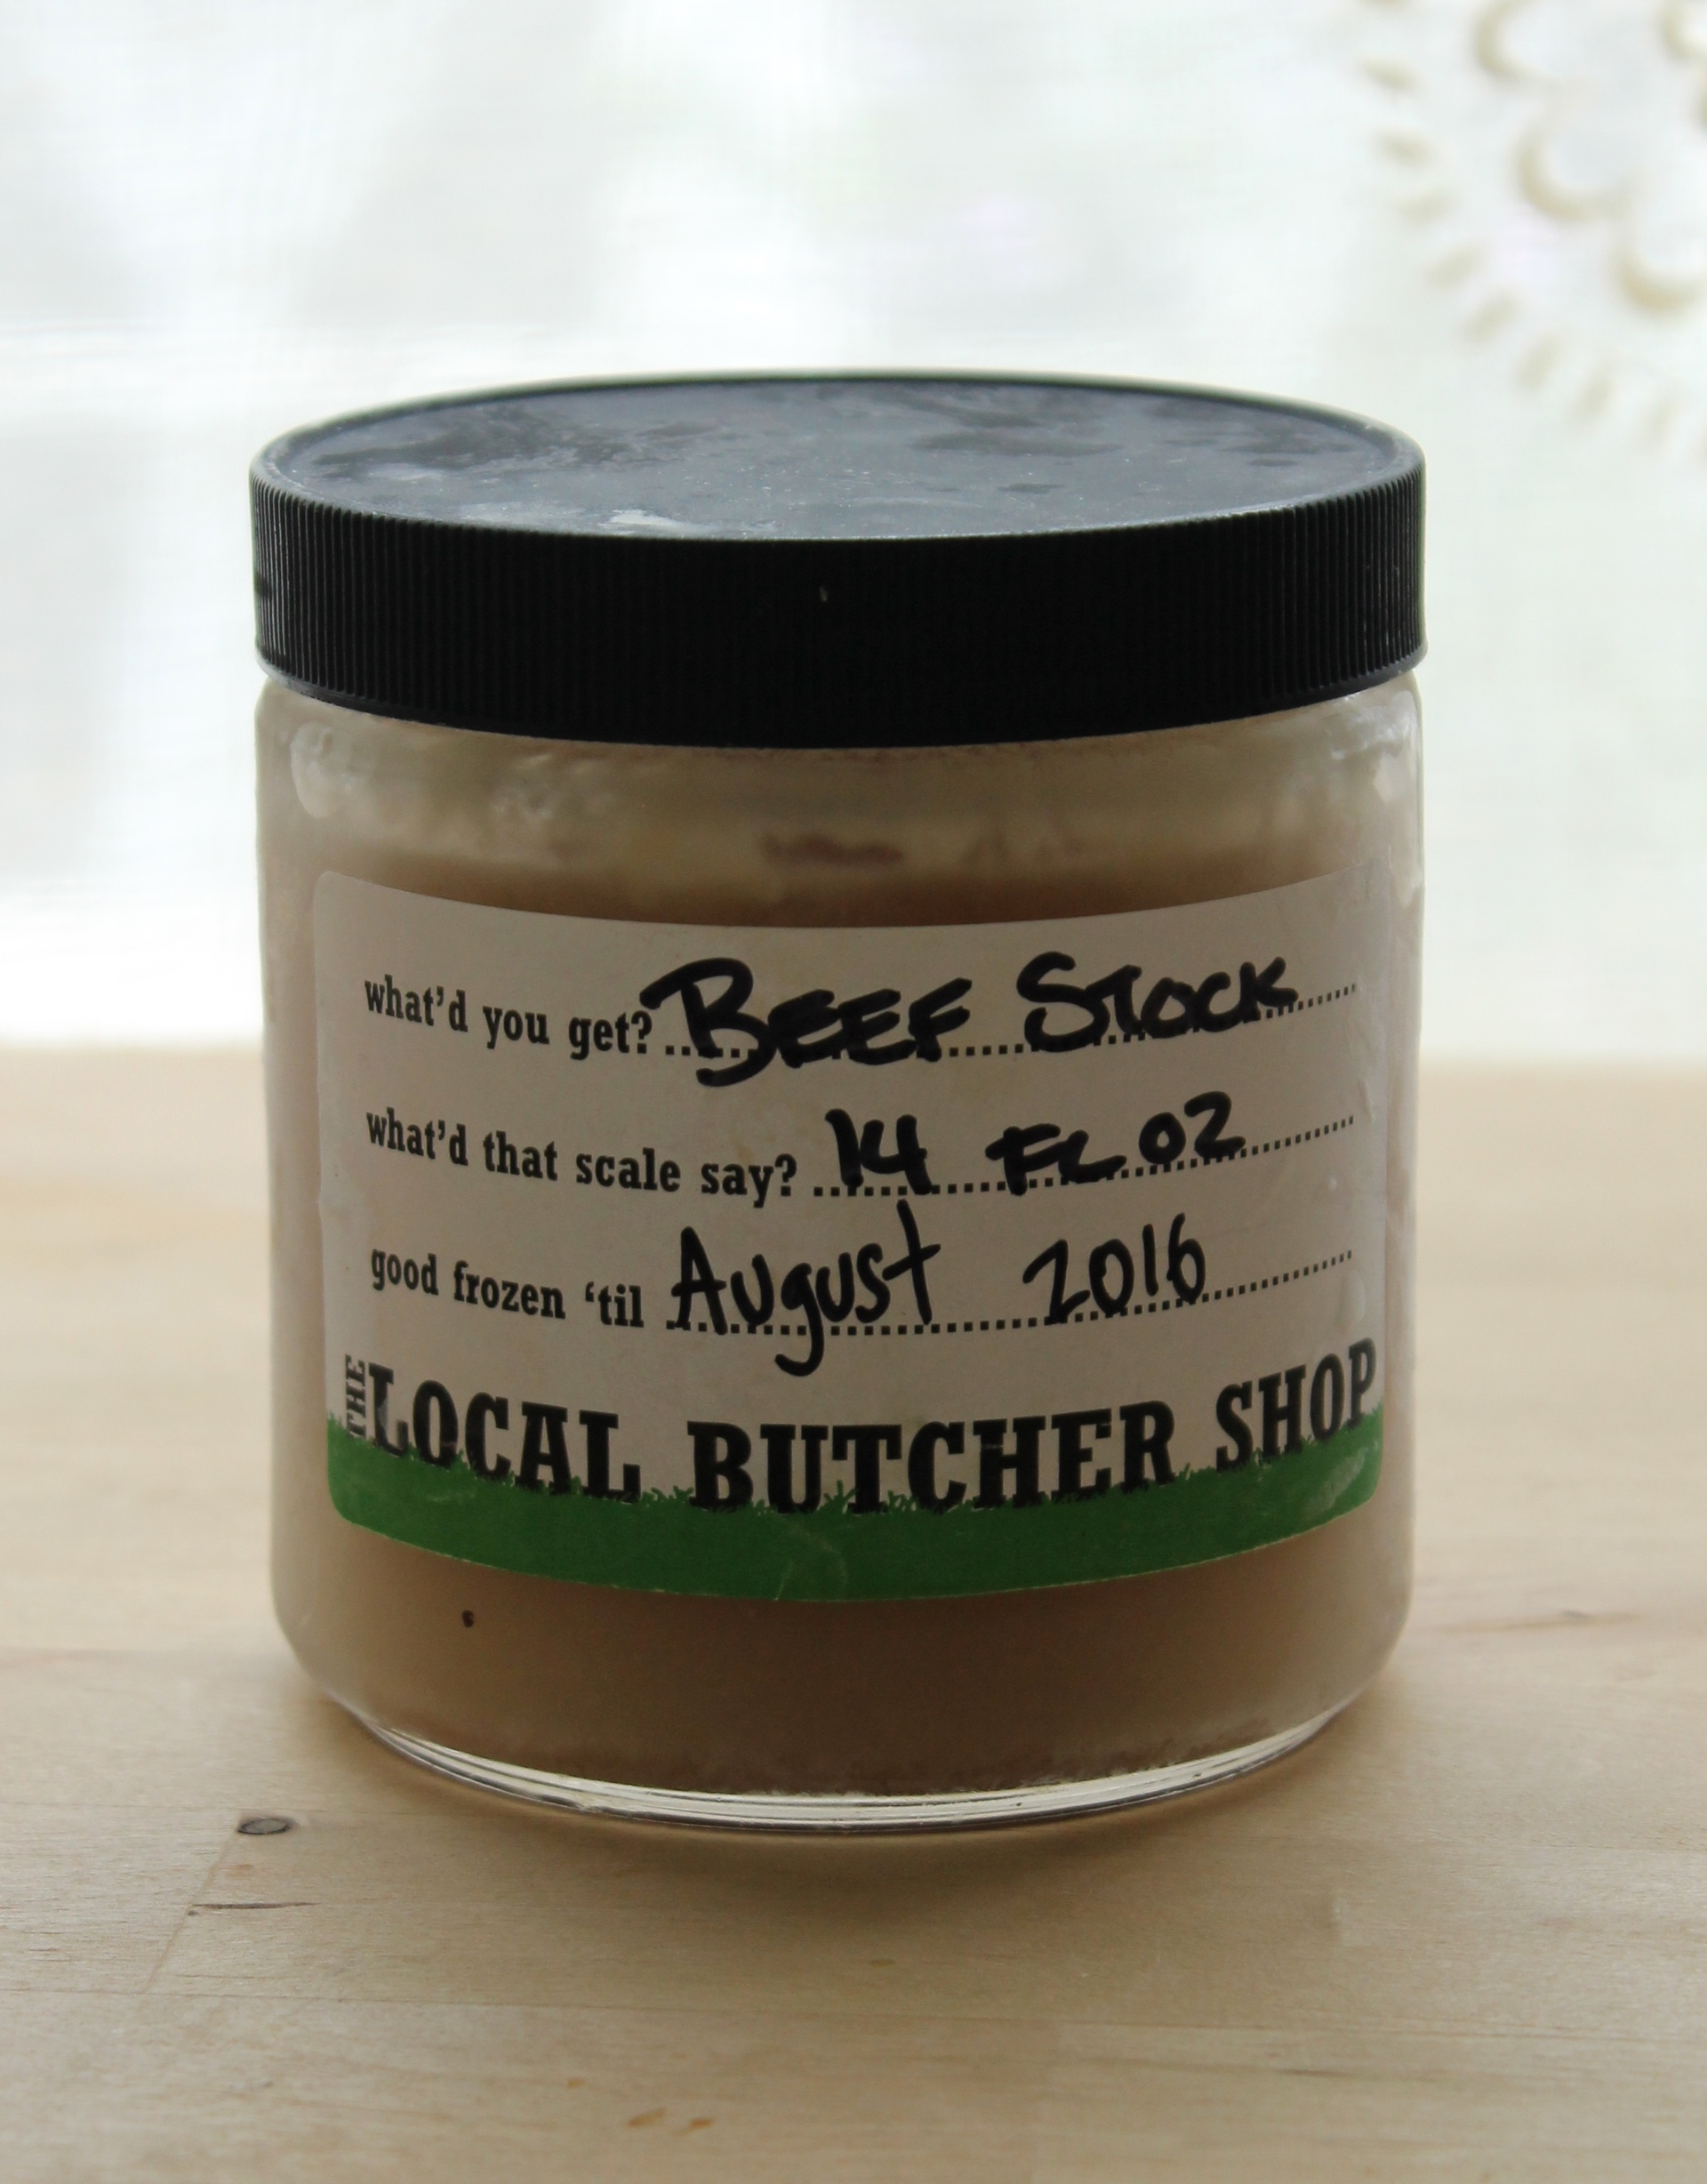 The Local Butcher Shop Beef Stock.